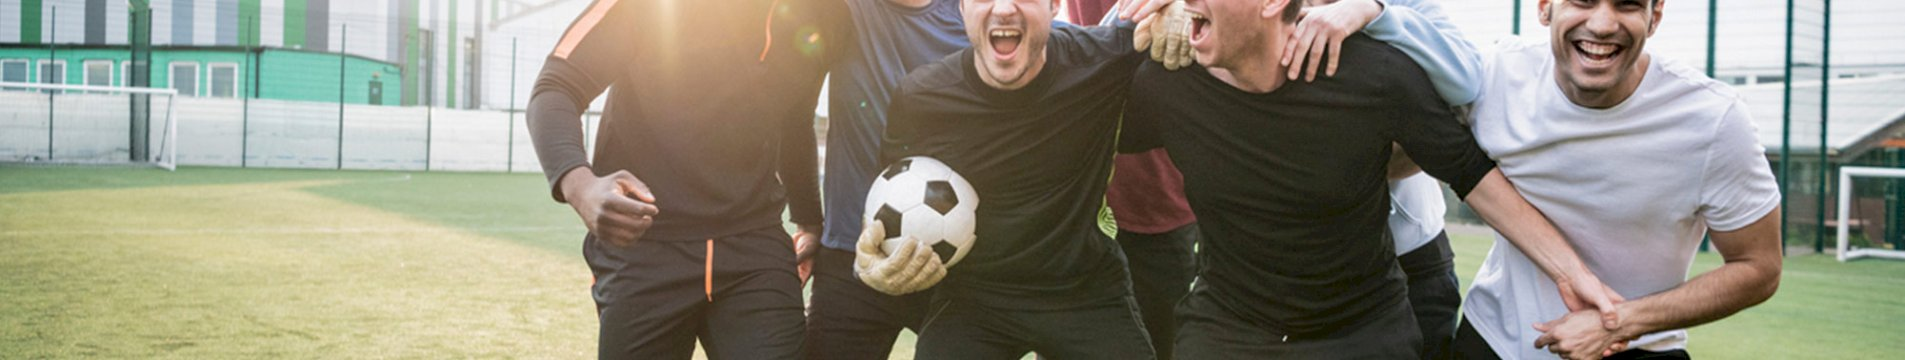 Group of men posing with football